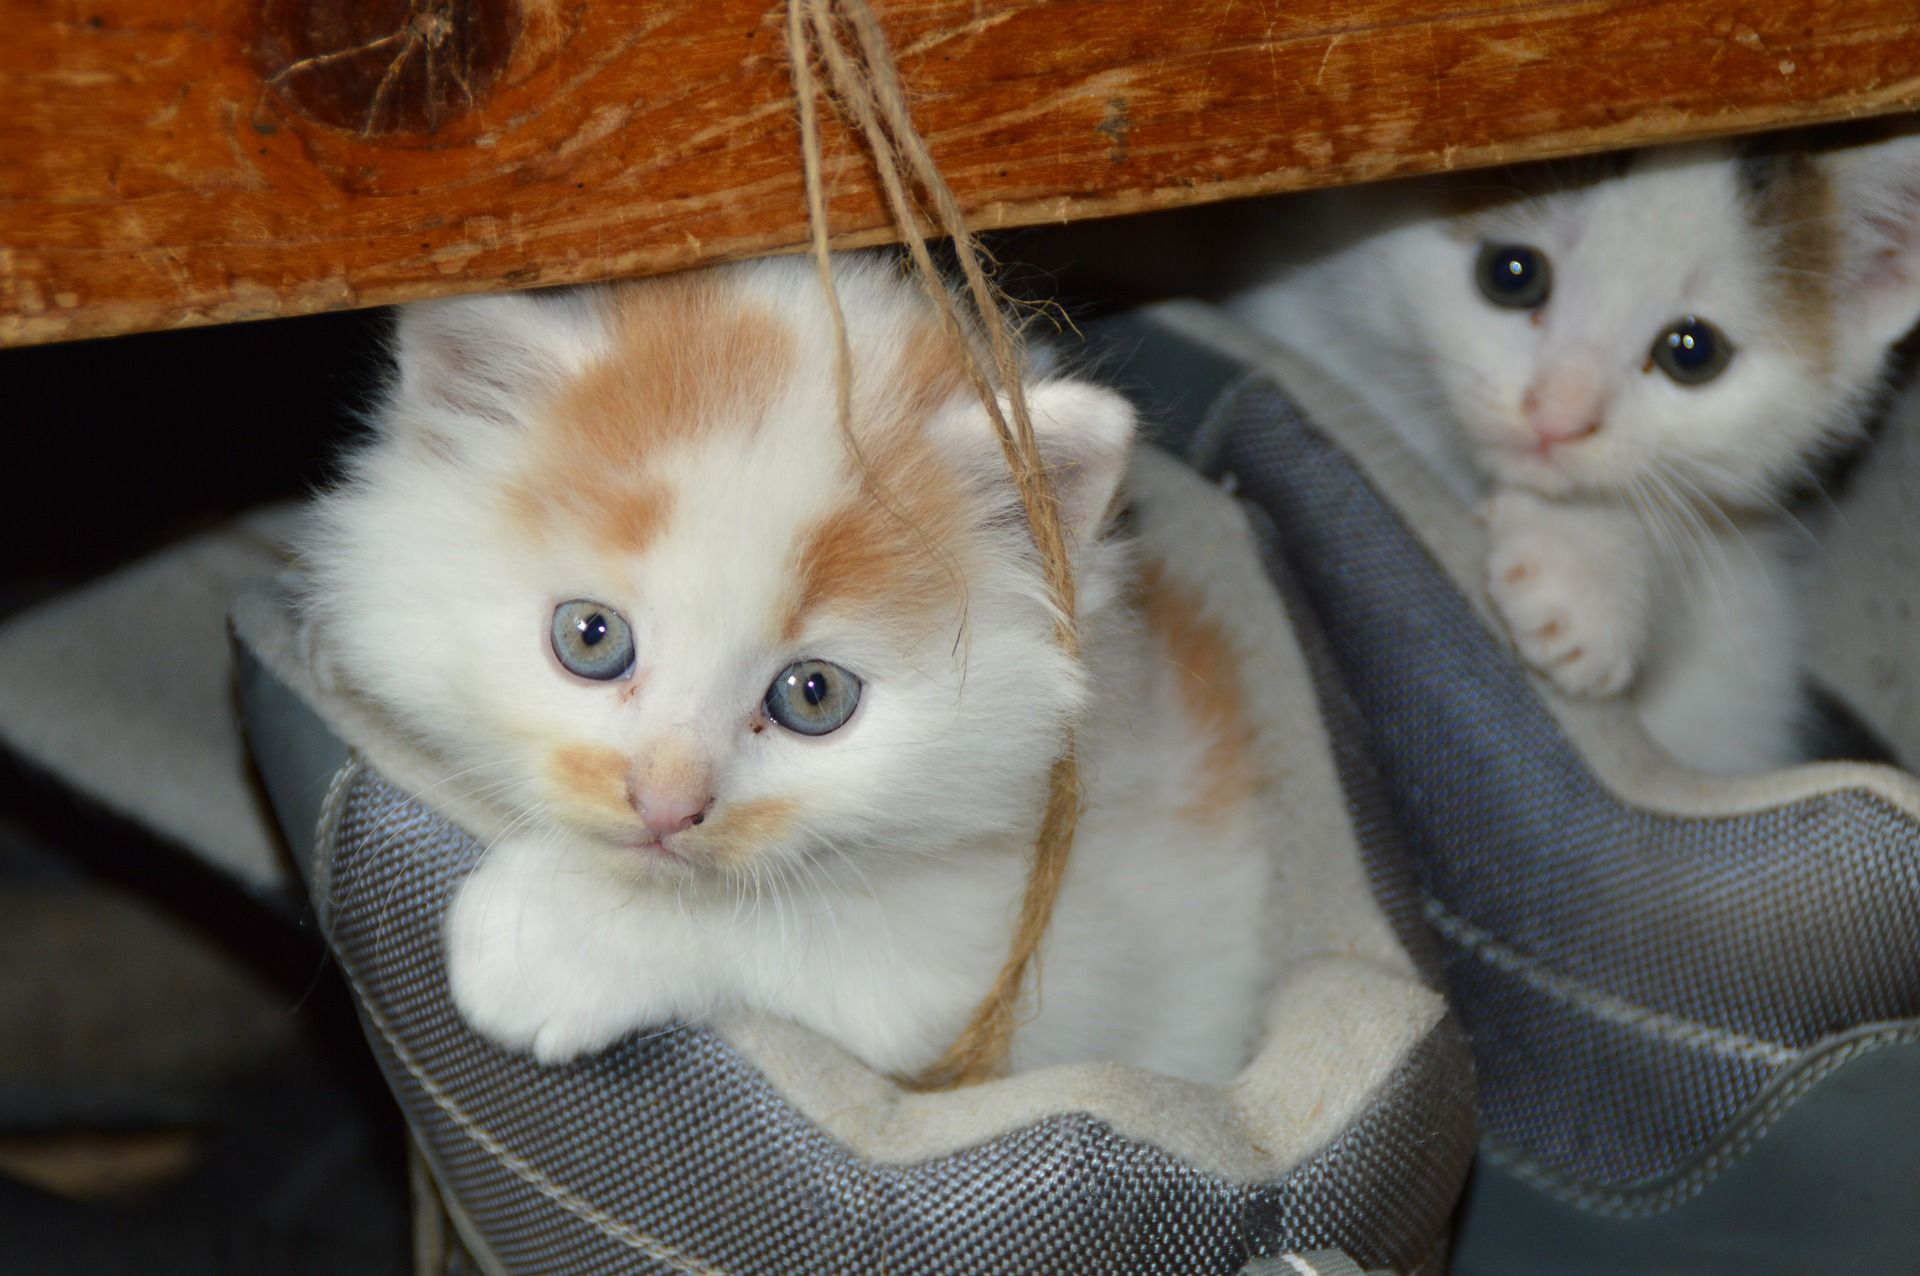 Shocking But True Some Of The Best Cat Trees Have No Carpet Teacup Kitten Cute Little Kittens Cat Care